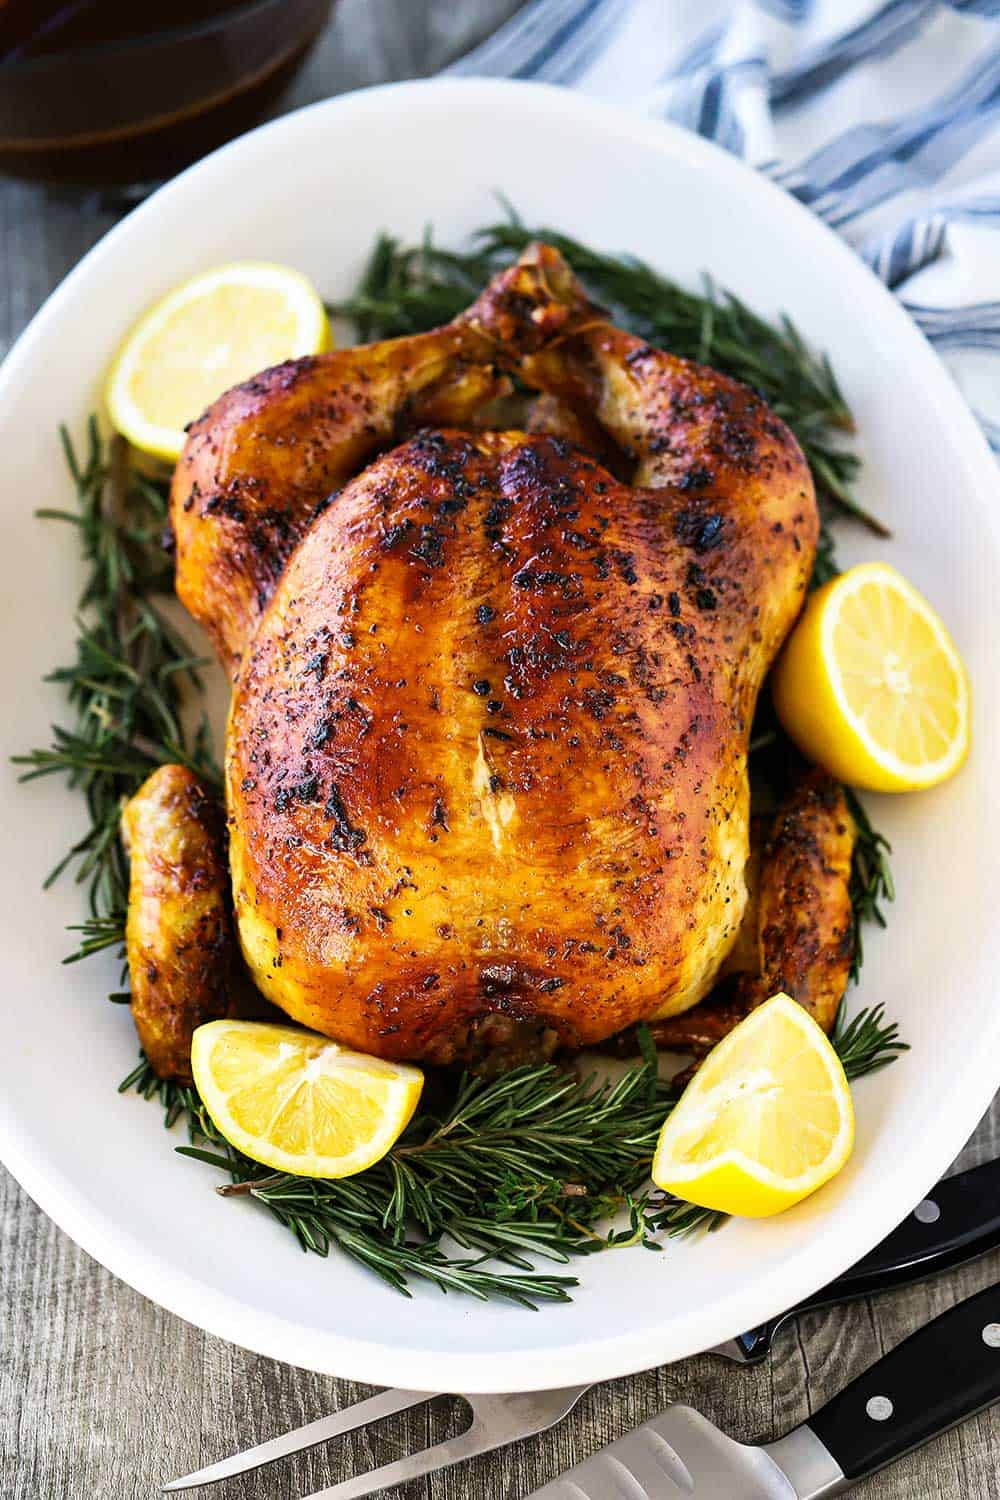 A roast chicken sitting on an oval platter with sliced lemons and herbs surrounding the bird.